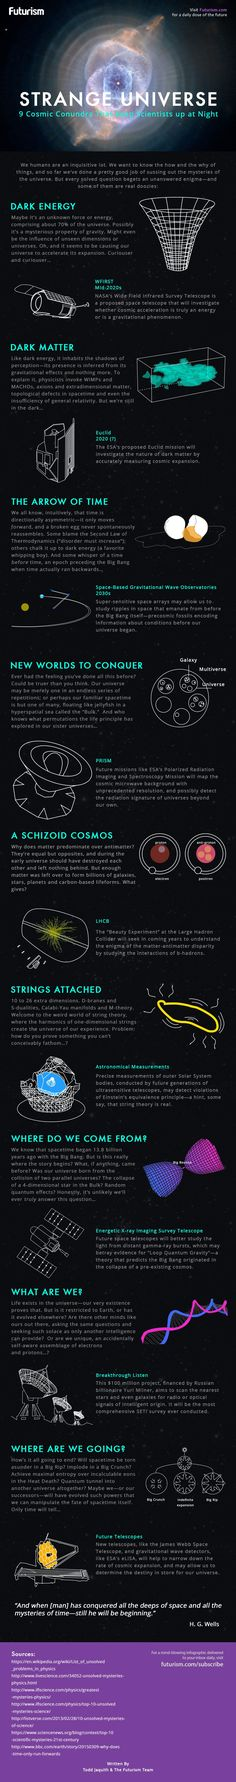 Universe Astronomy From dark energy and string theory to the end of the Universe, these are the unanswered cosmic conundra that are still baffling scientists. Astronomy Facts, Space And Astronomy, Astronomy Stars, Astronomy Science, Cosmos, Pseudo Science, Science And Nature, Applied Science, Physics Questions